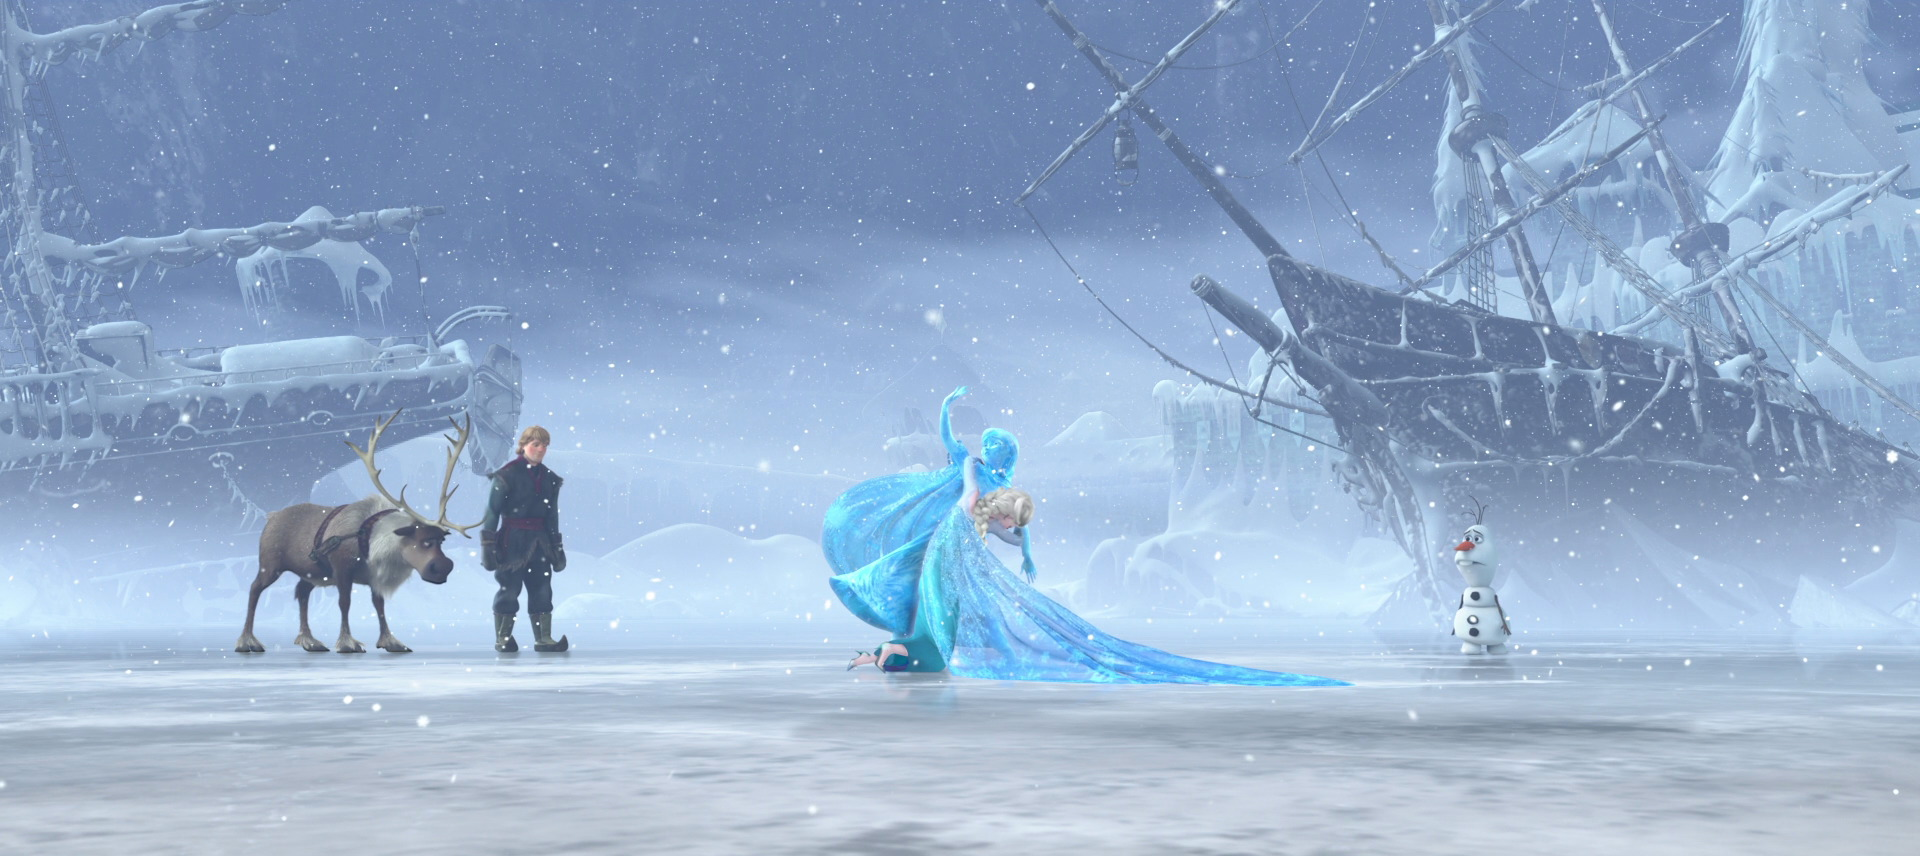 The Past Lives of Disney's Frozen | Prologue to a Blog